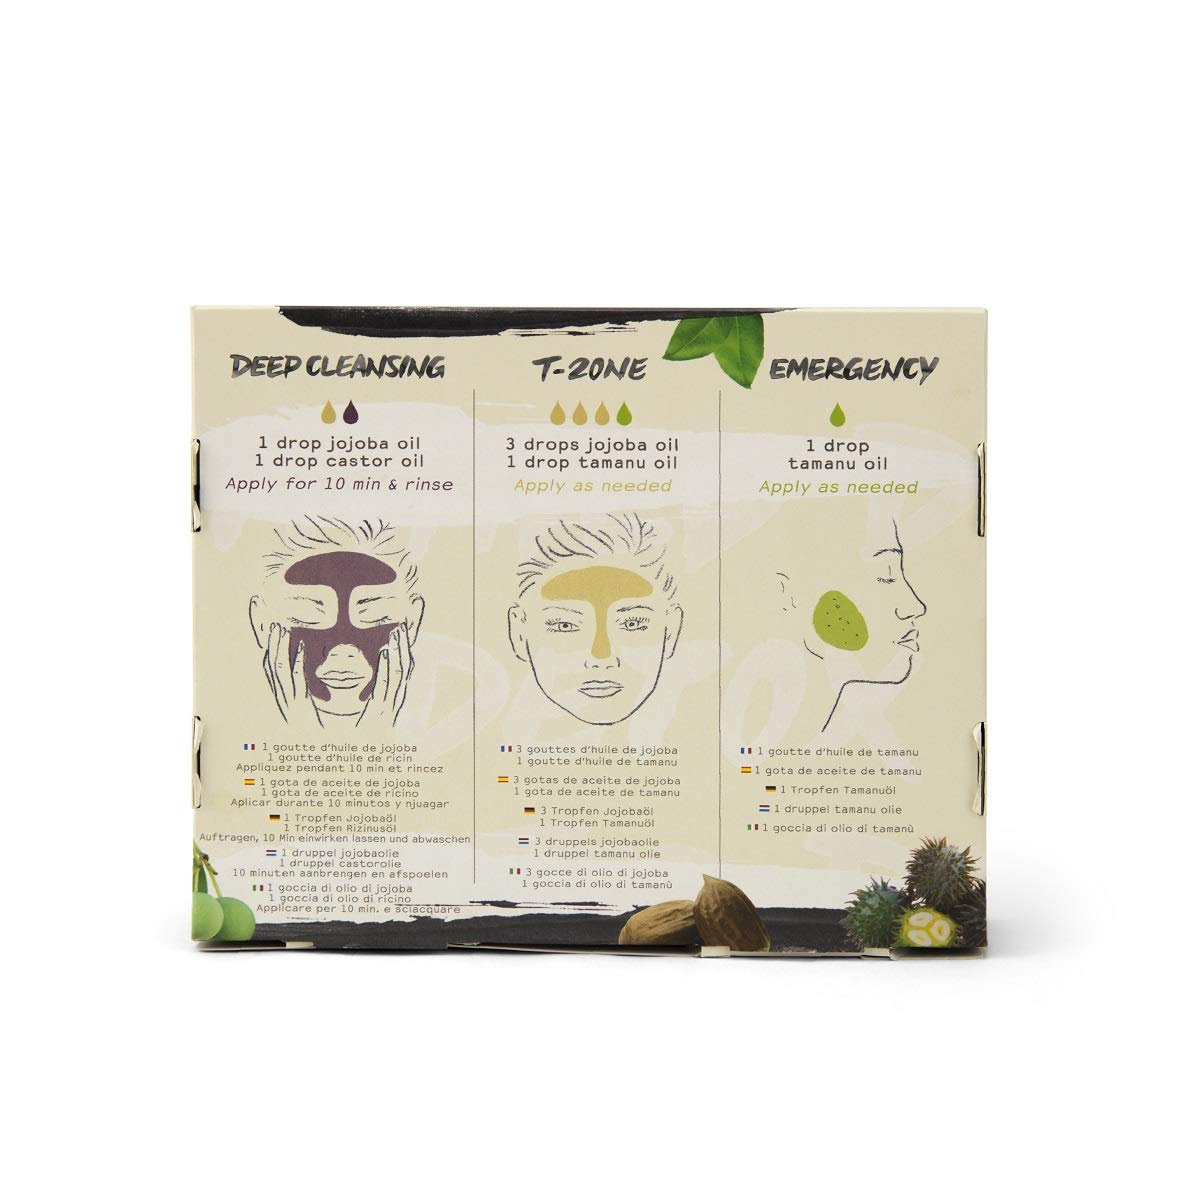 Oleum Vera - DIY Organic Beauty Kit - Detox Face Serums + FREE Detox Masks